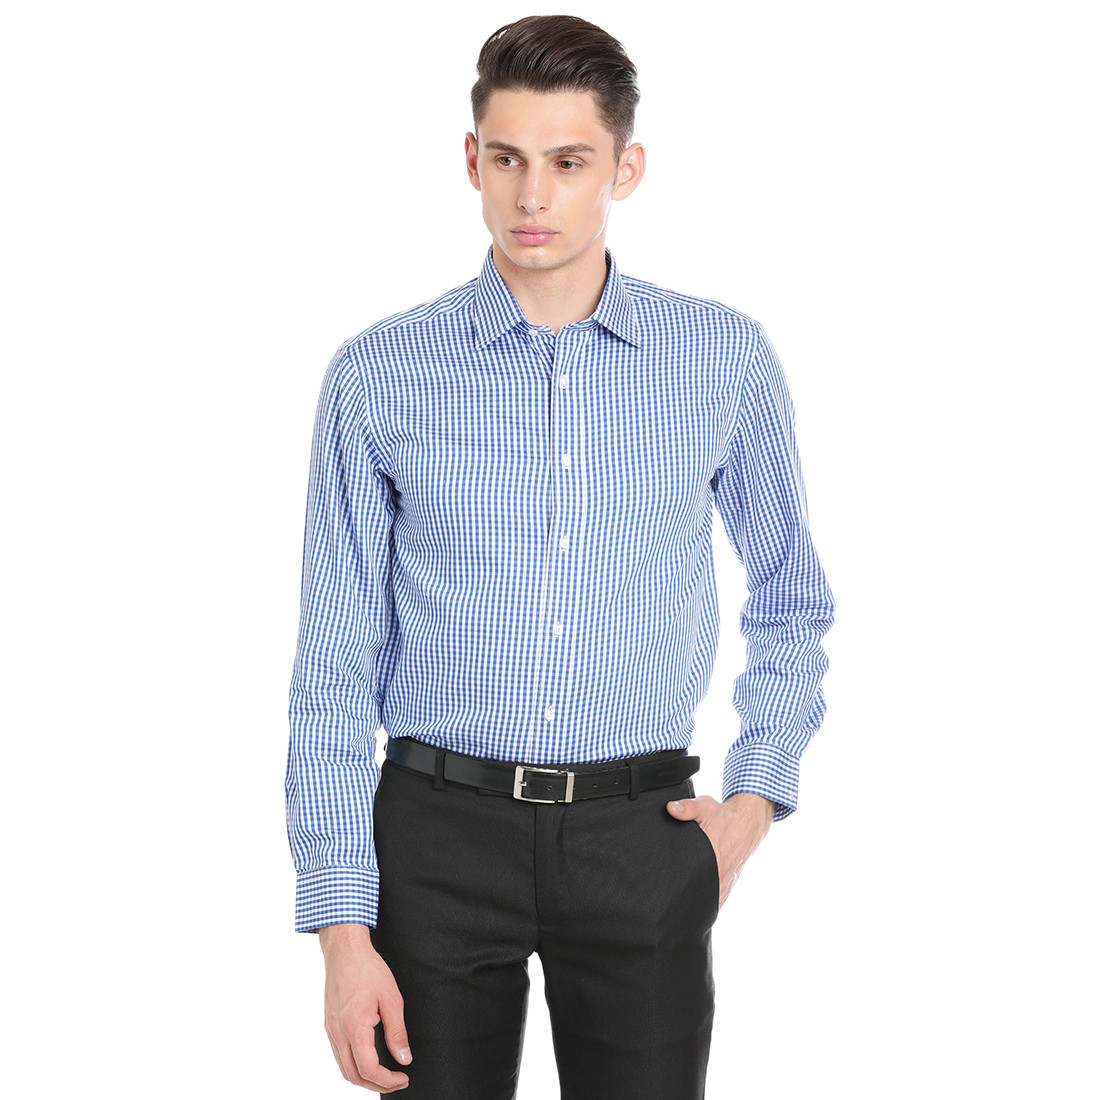 Paradigm Blue Color Formal Pure Cotton Non-Iron Shirt